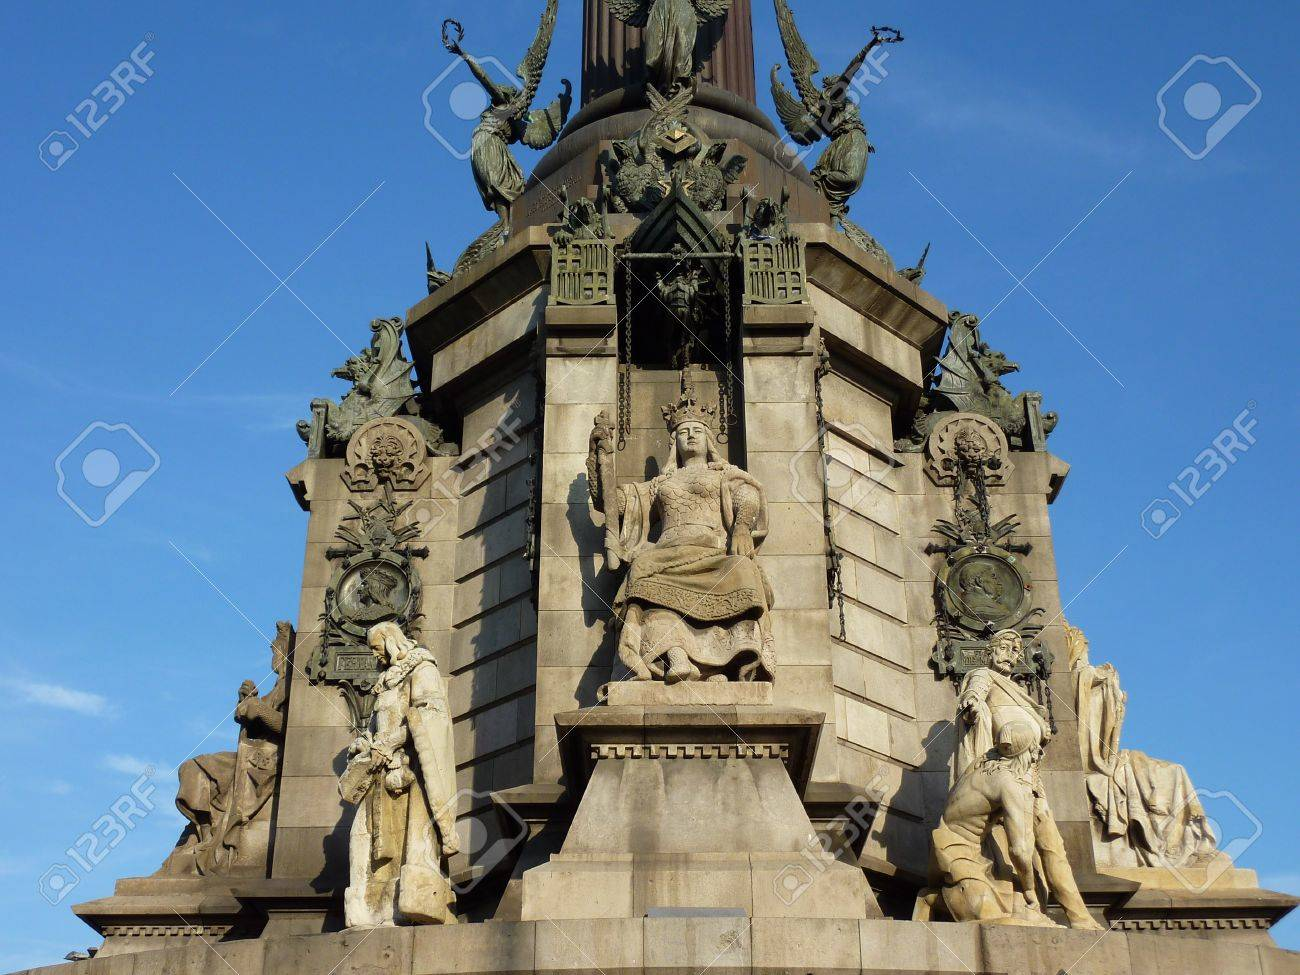 Sculptures at the base of Christopher Columbus memorial, Barcelona, Spain Stock Photo - 8601228